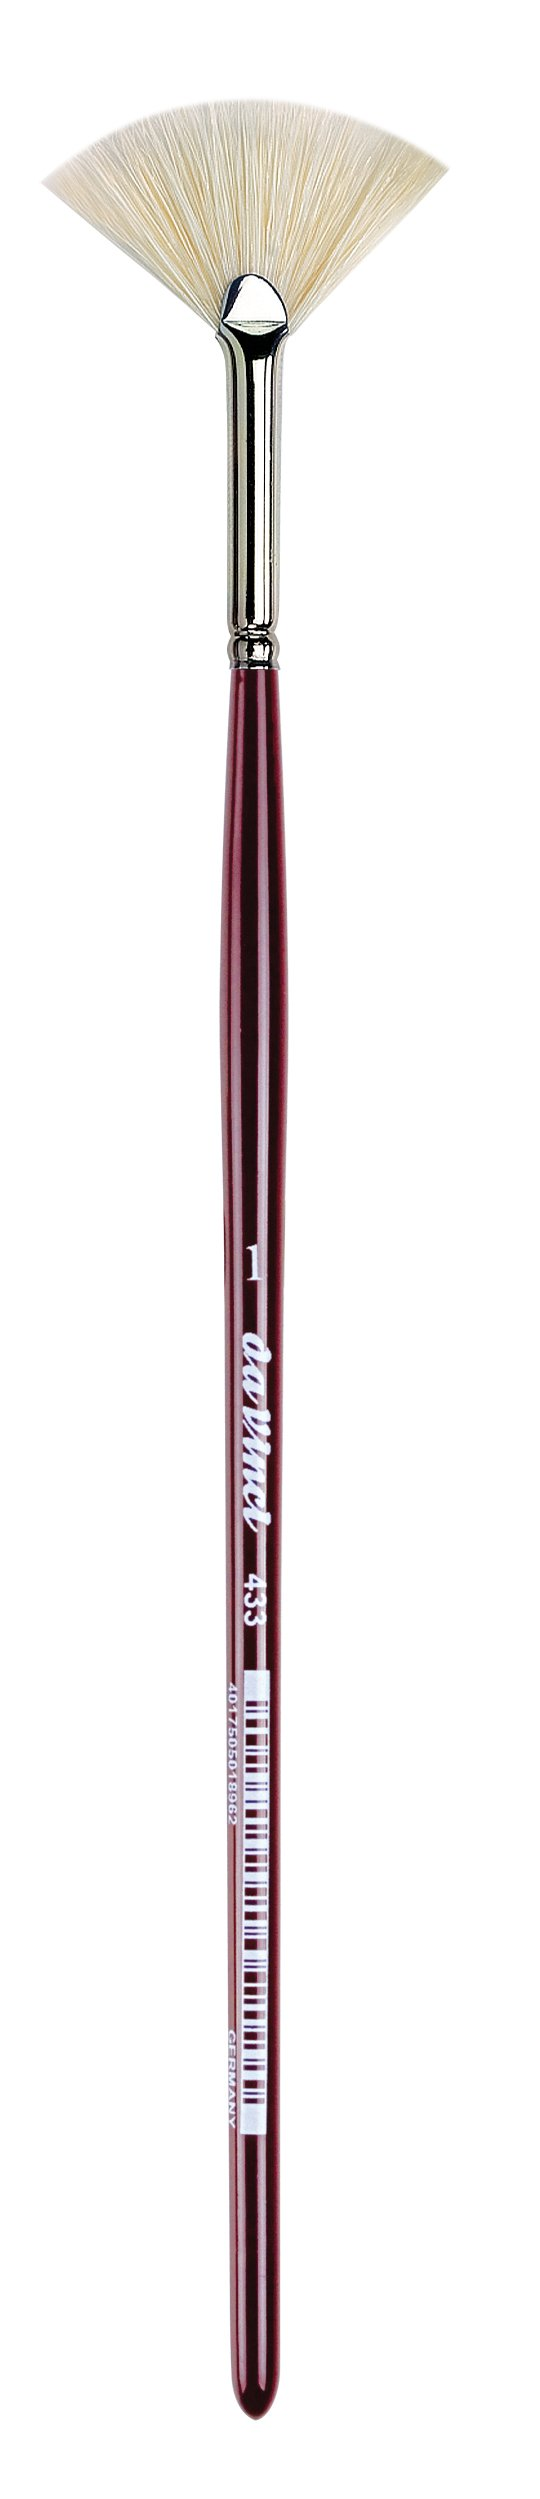 da Vinci Varnish & Priming Series 433 Fan Blender Brush, Extra Short Hog Bristle with Maroon Handle, Size 1 by da Vinci Brushes